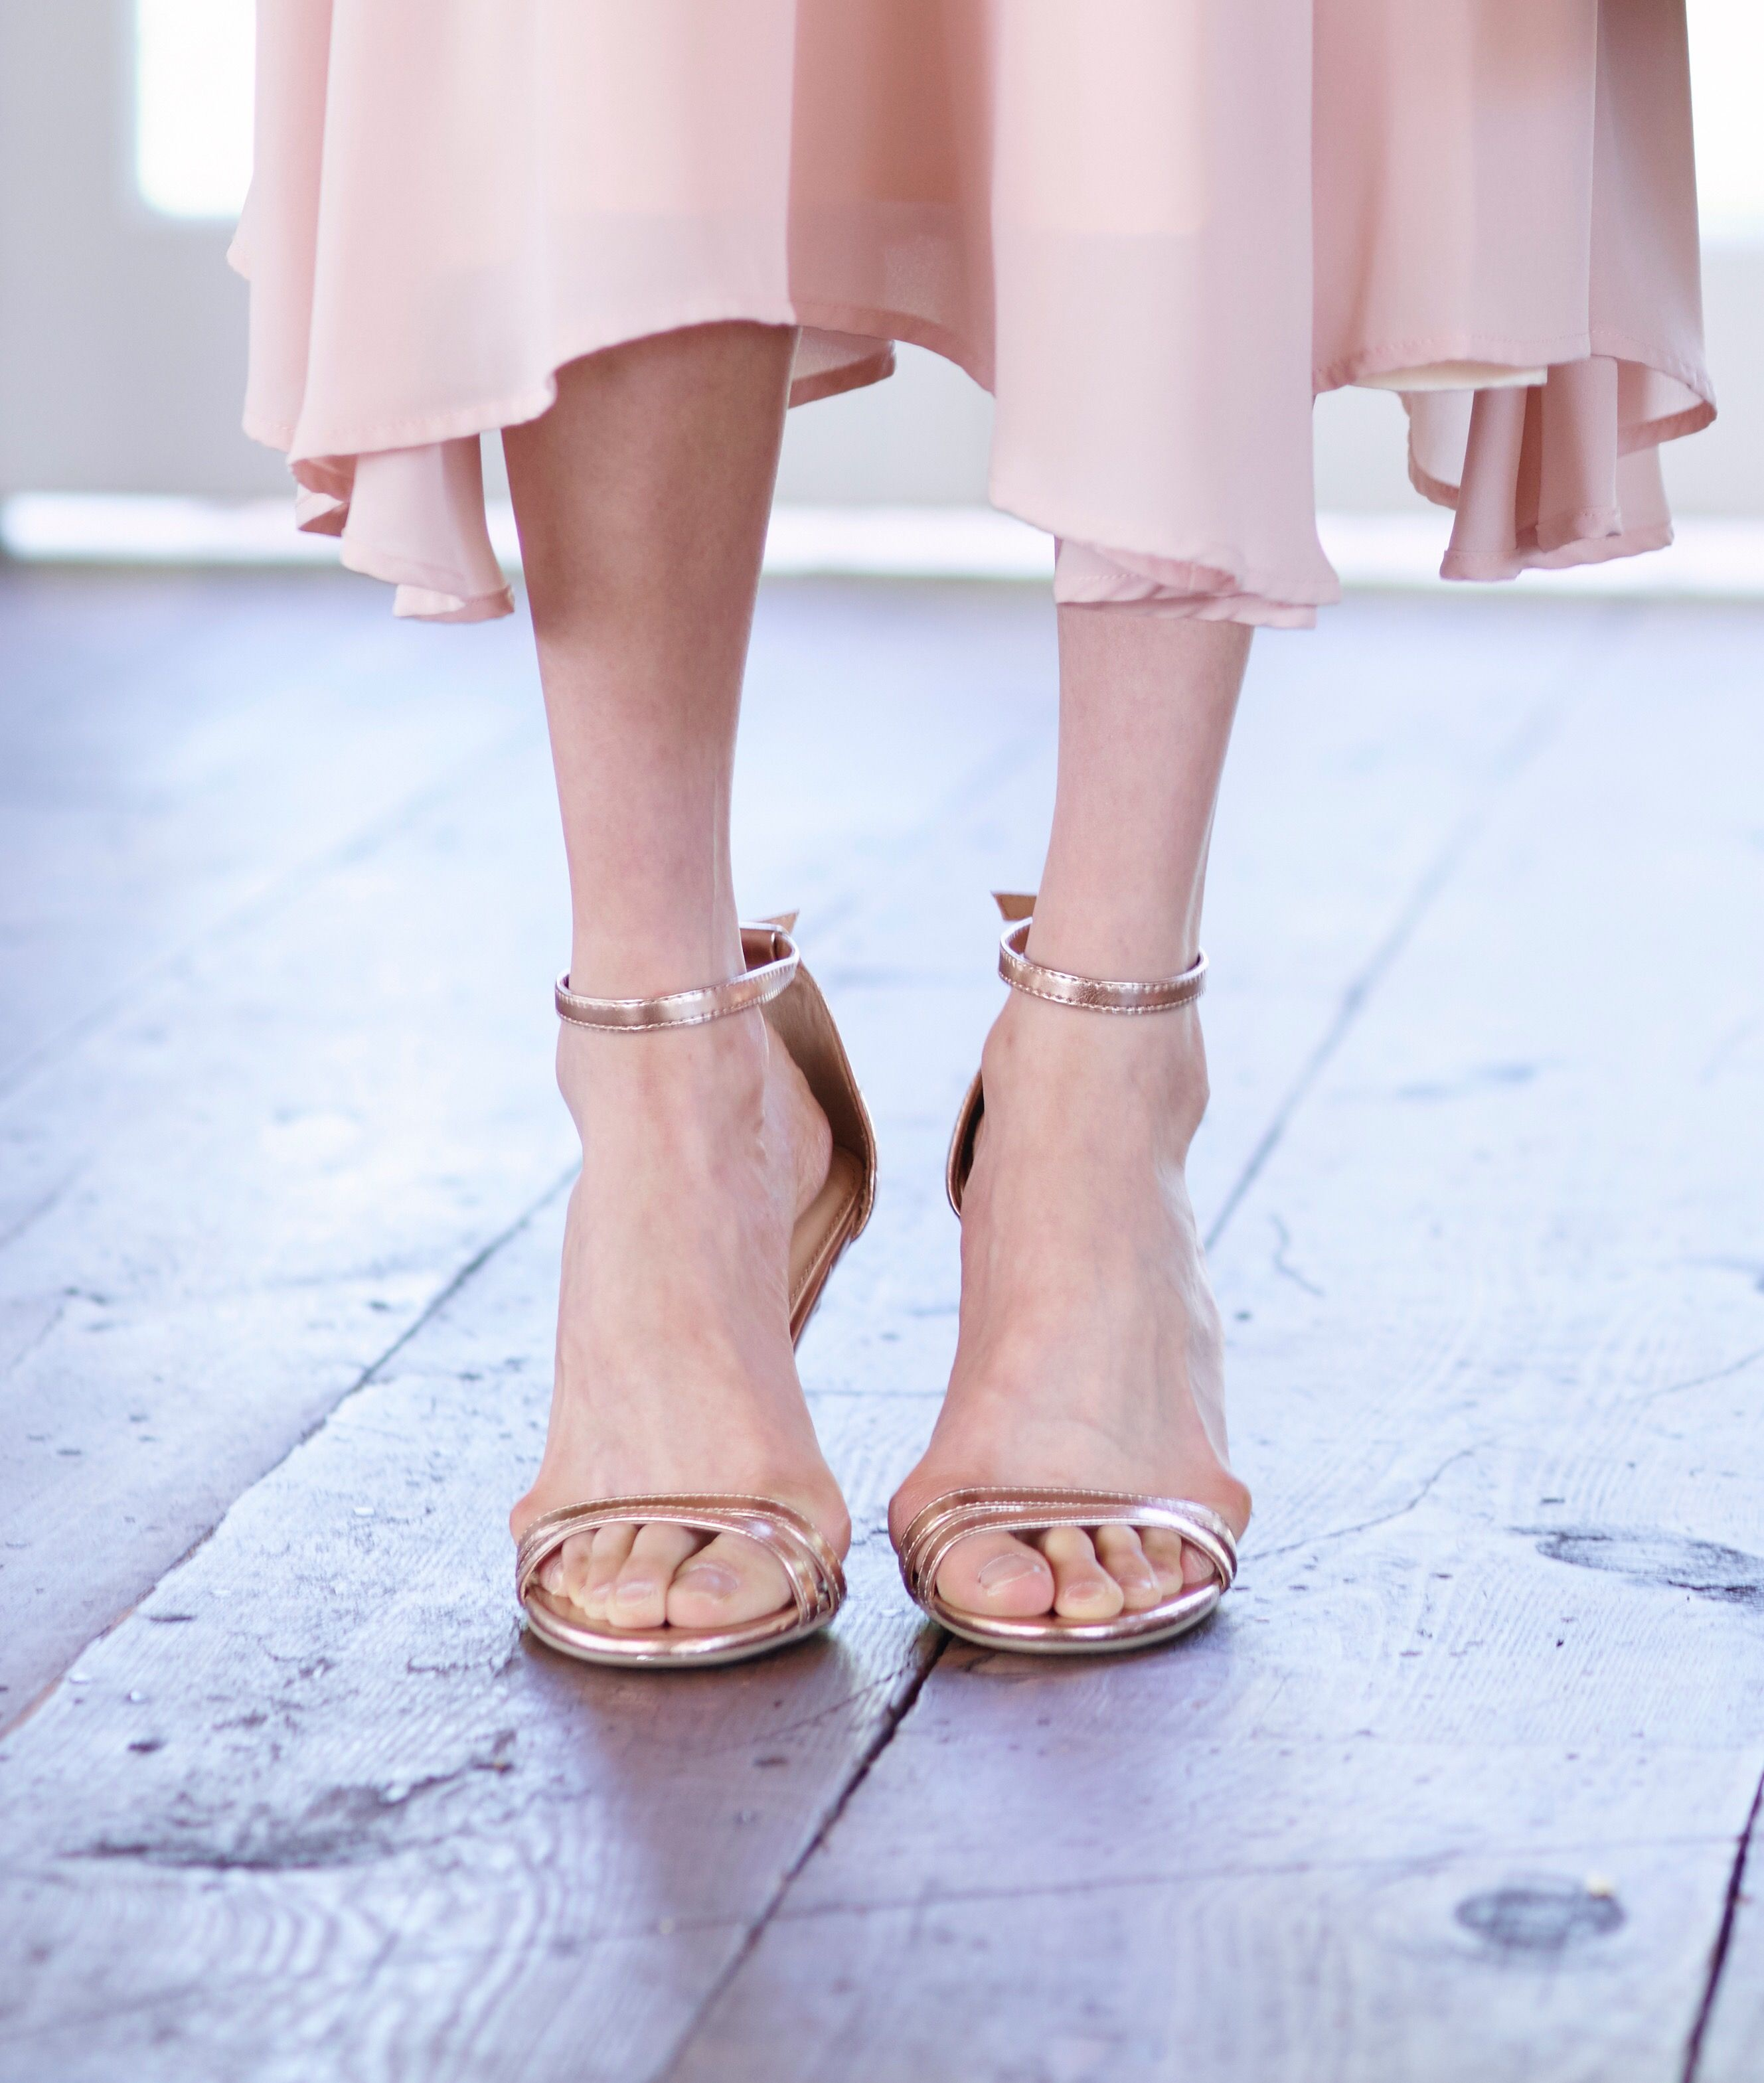 fe8d2da22643 LC Lauren Conrad Runway Collection Ankle Strap Heels in Rose Gold